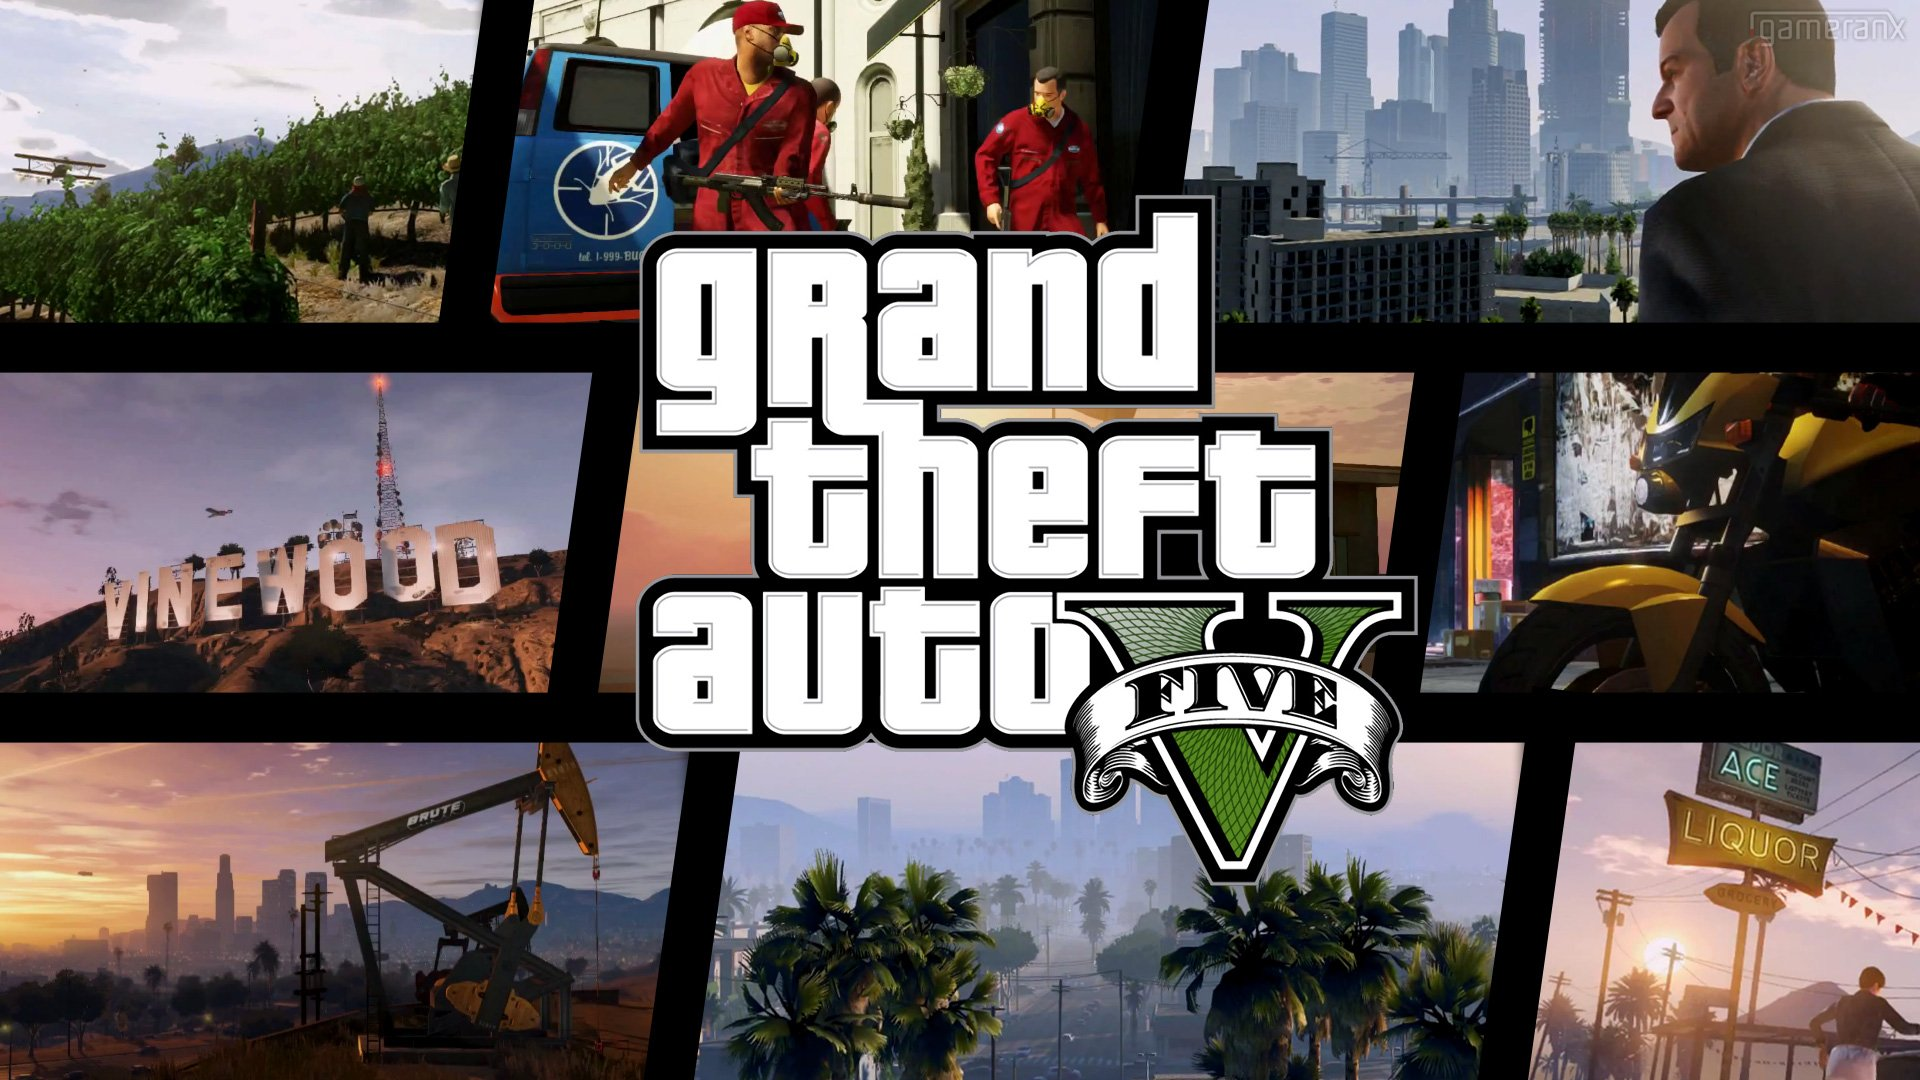 GTA 5 Wallpapers in HD 1920x1080